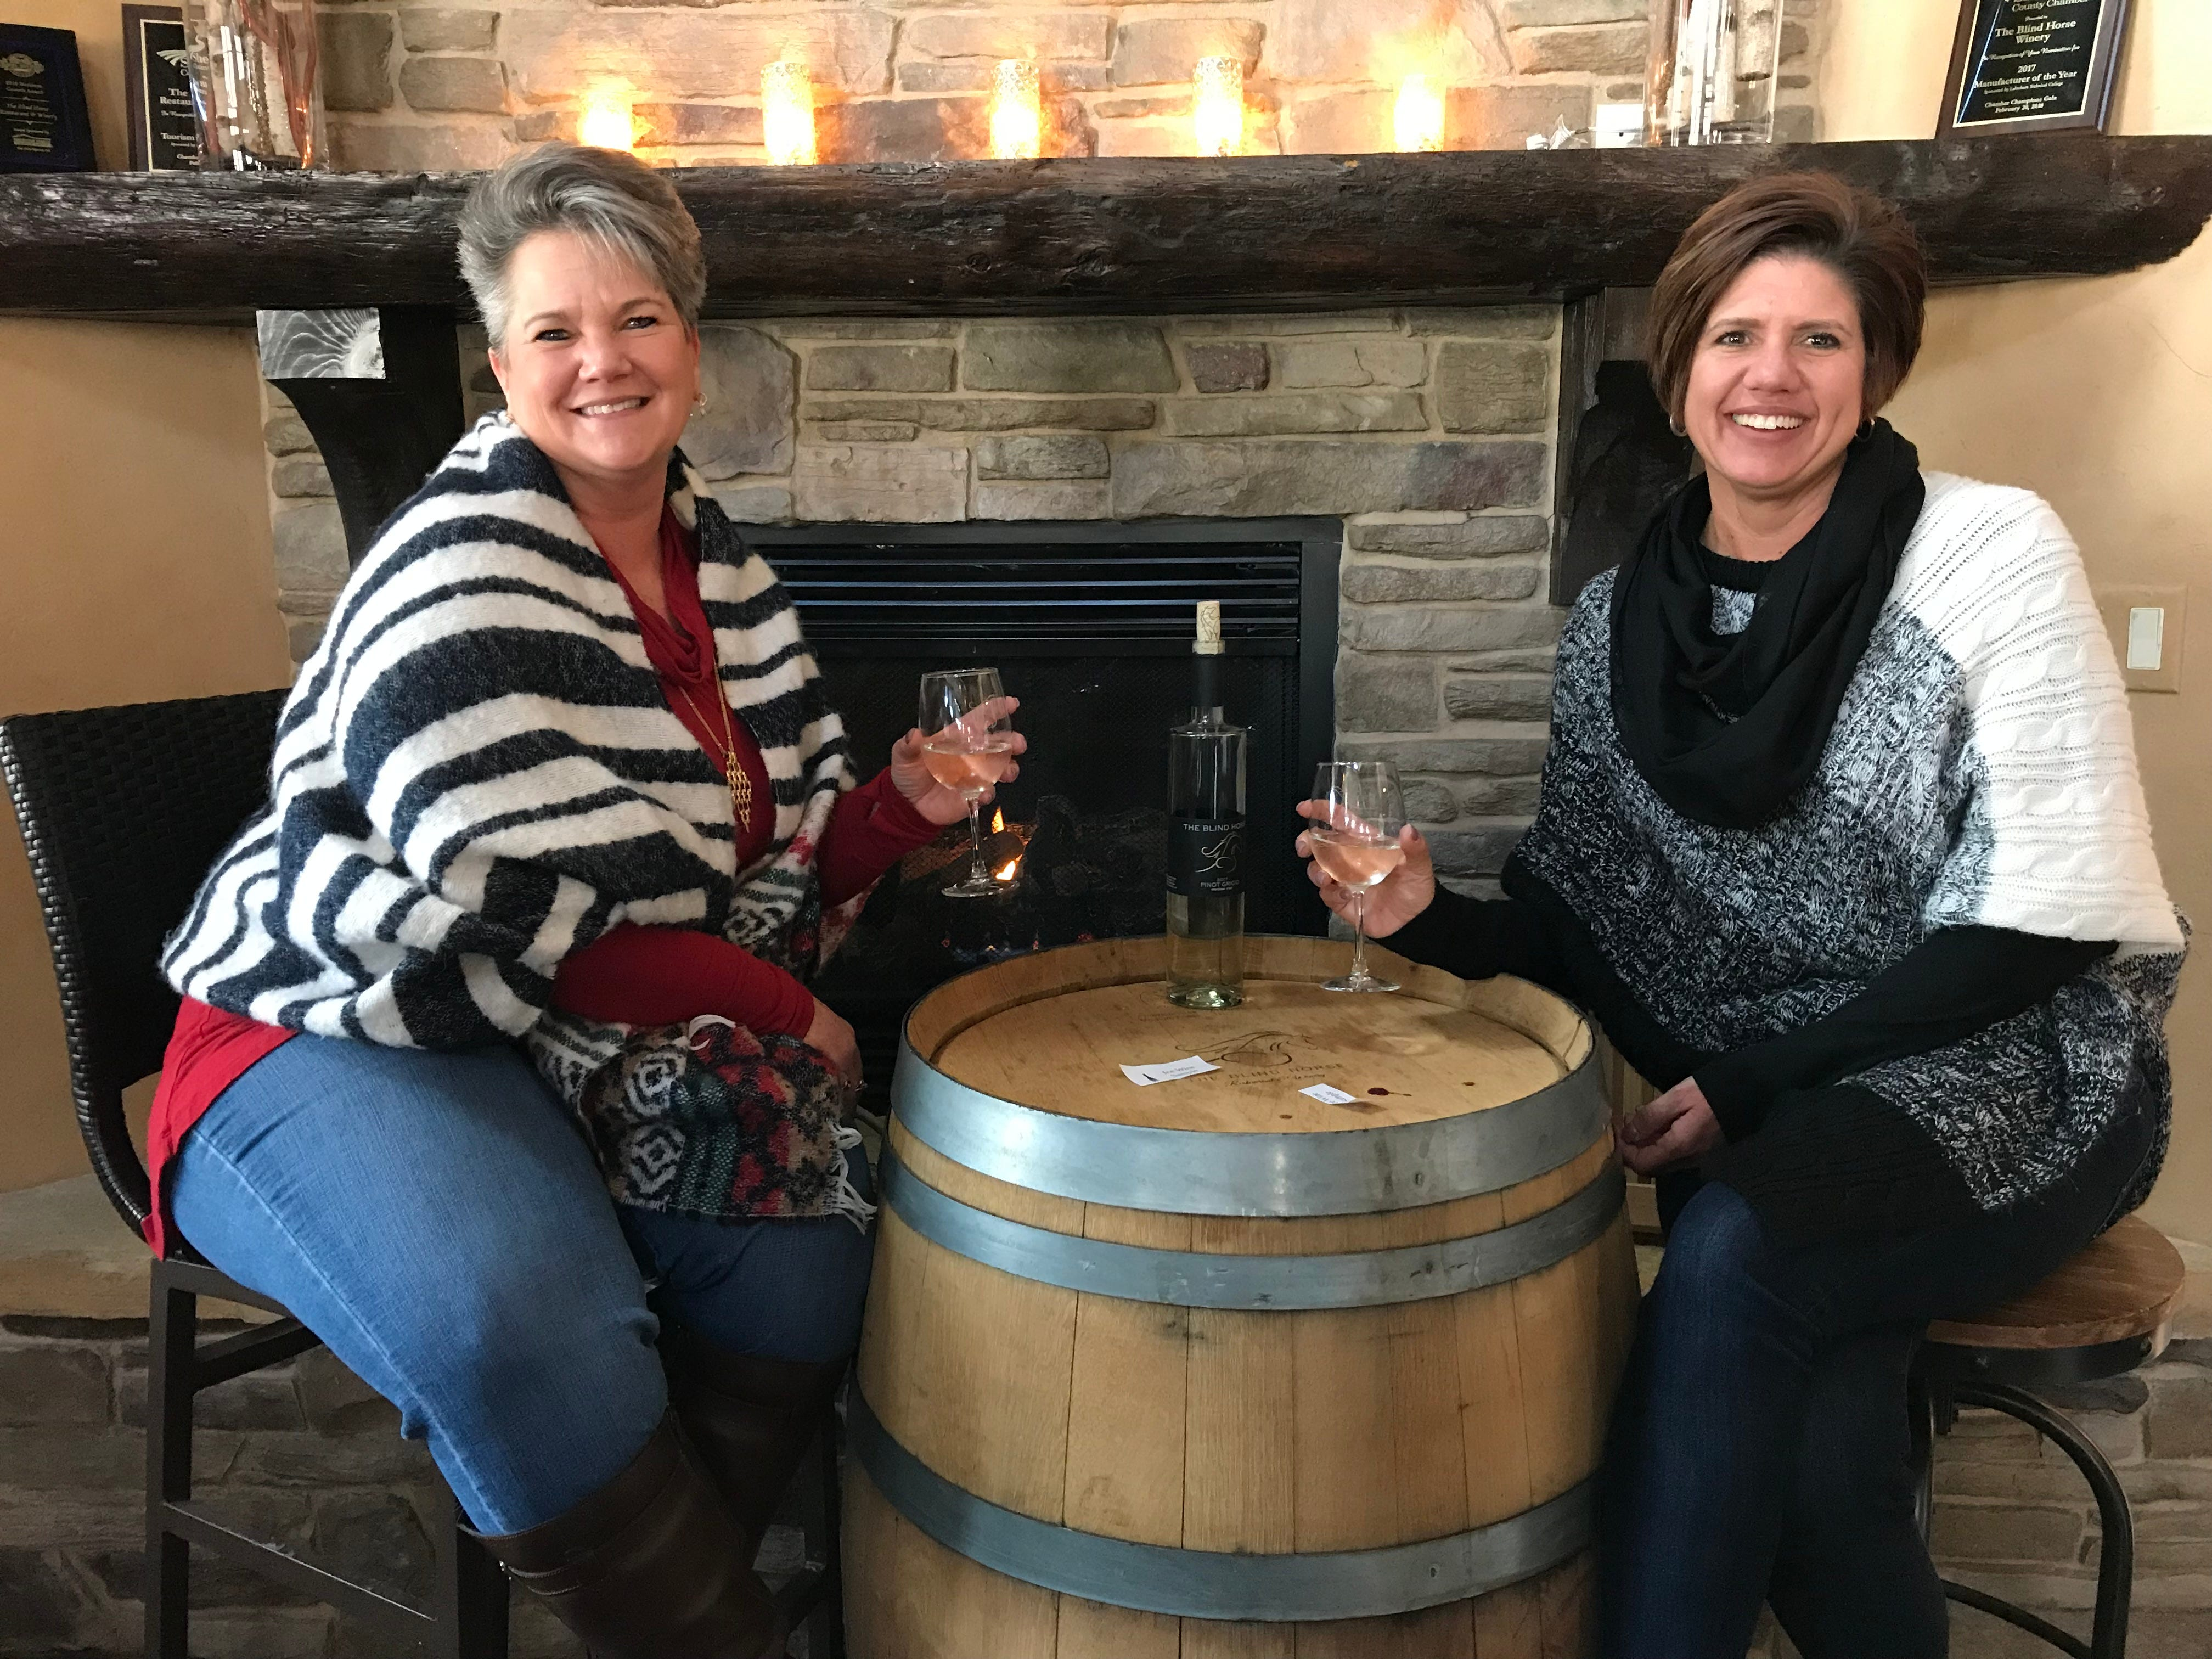 Maria Myers and Heidi Soodsma enjoying wine during the second launch party for ice wine at the Blind Horse. Both ladies love the atmosphere of the Blind Horse, the live music and the friendliness of the staff.